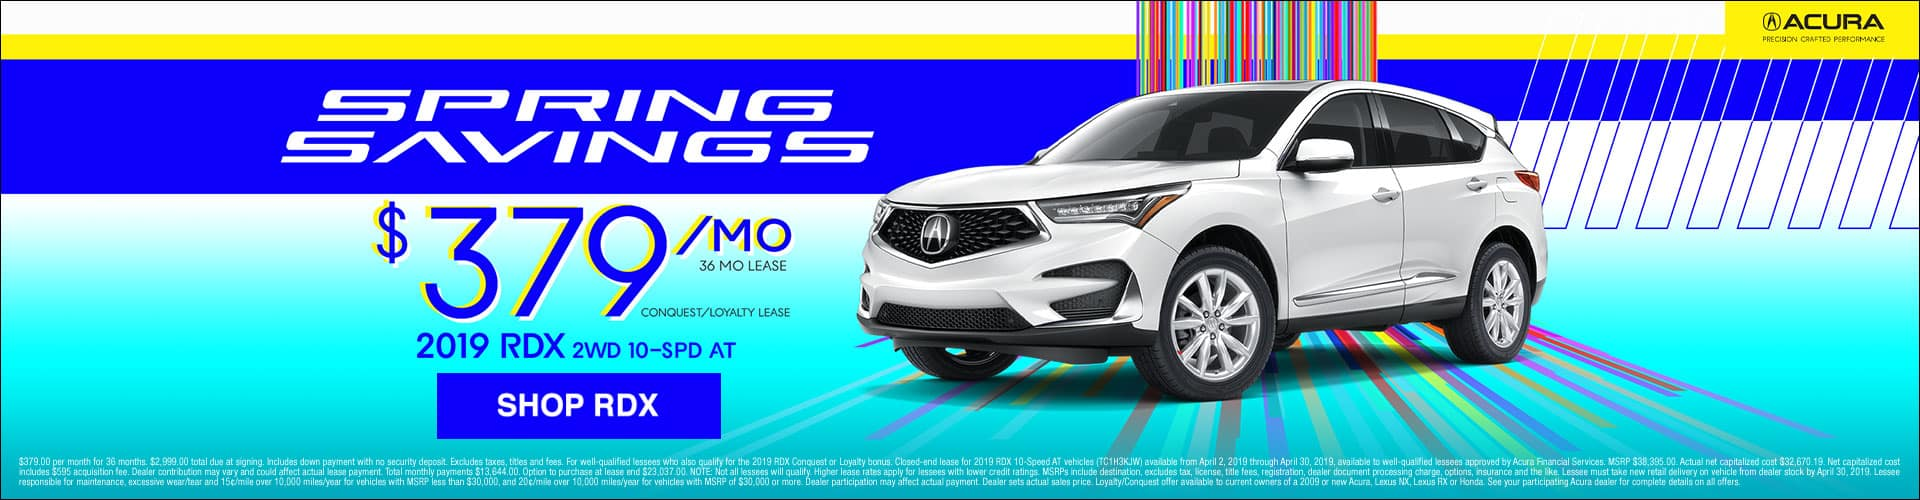 2019 Acura RDX $379 Lease Offer